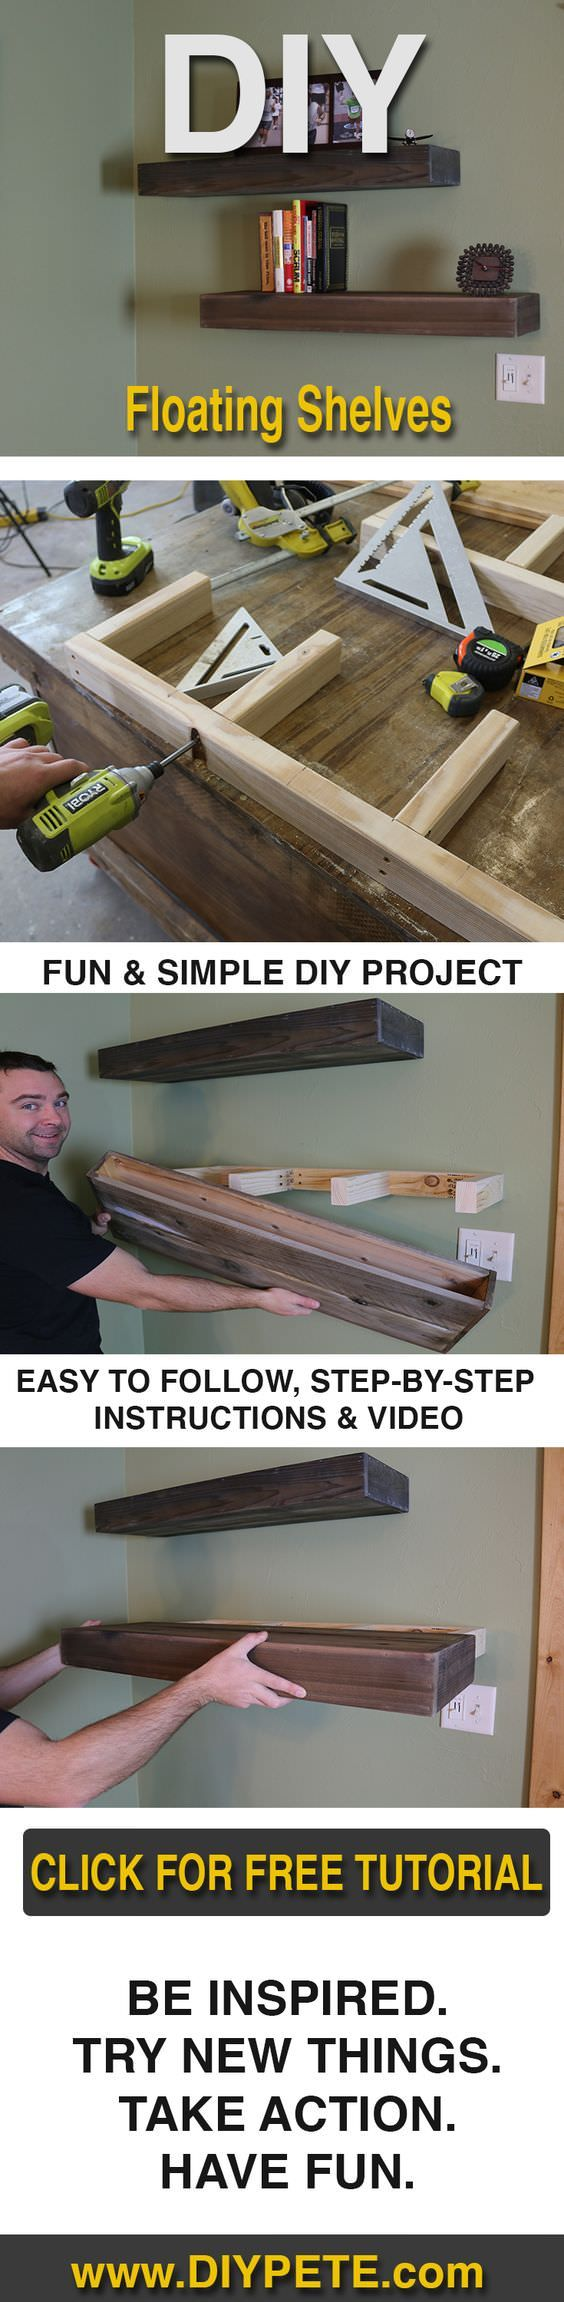 Decorative Floating Shelves Diy Wood Floating Shelves Are A Great Way To Keep Collectibles